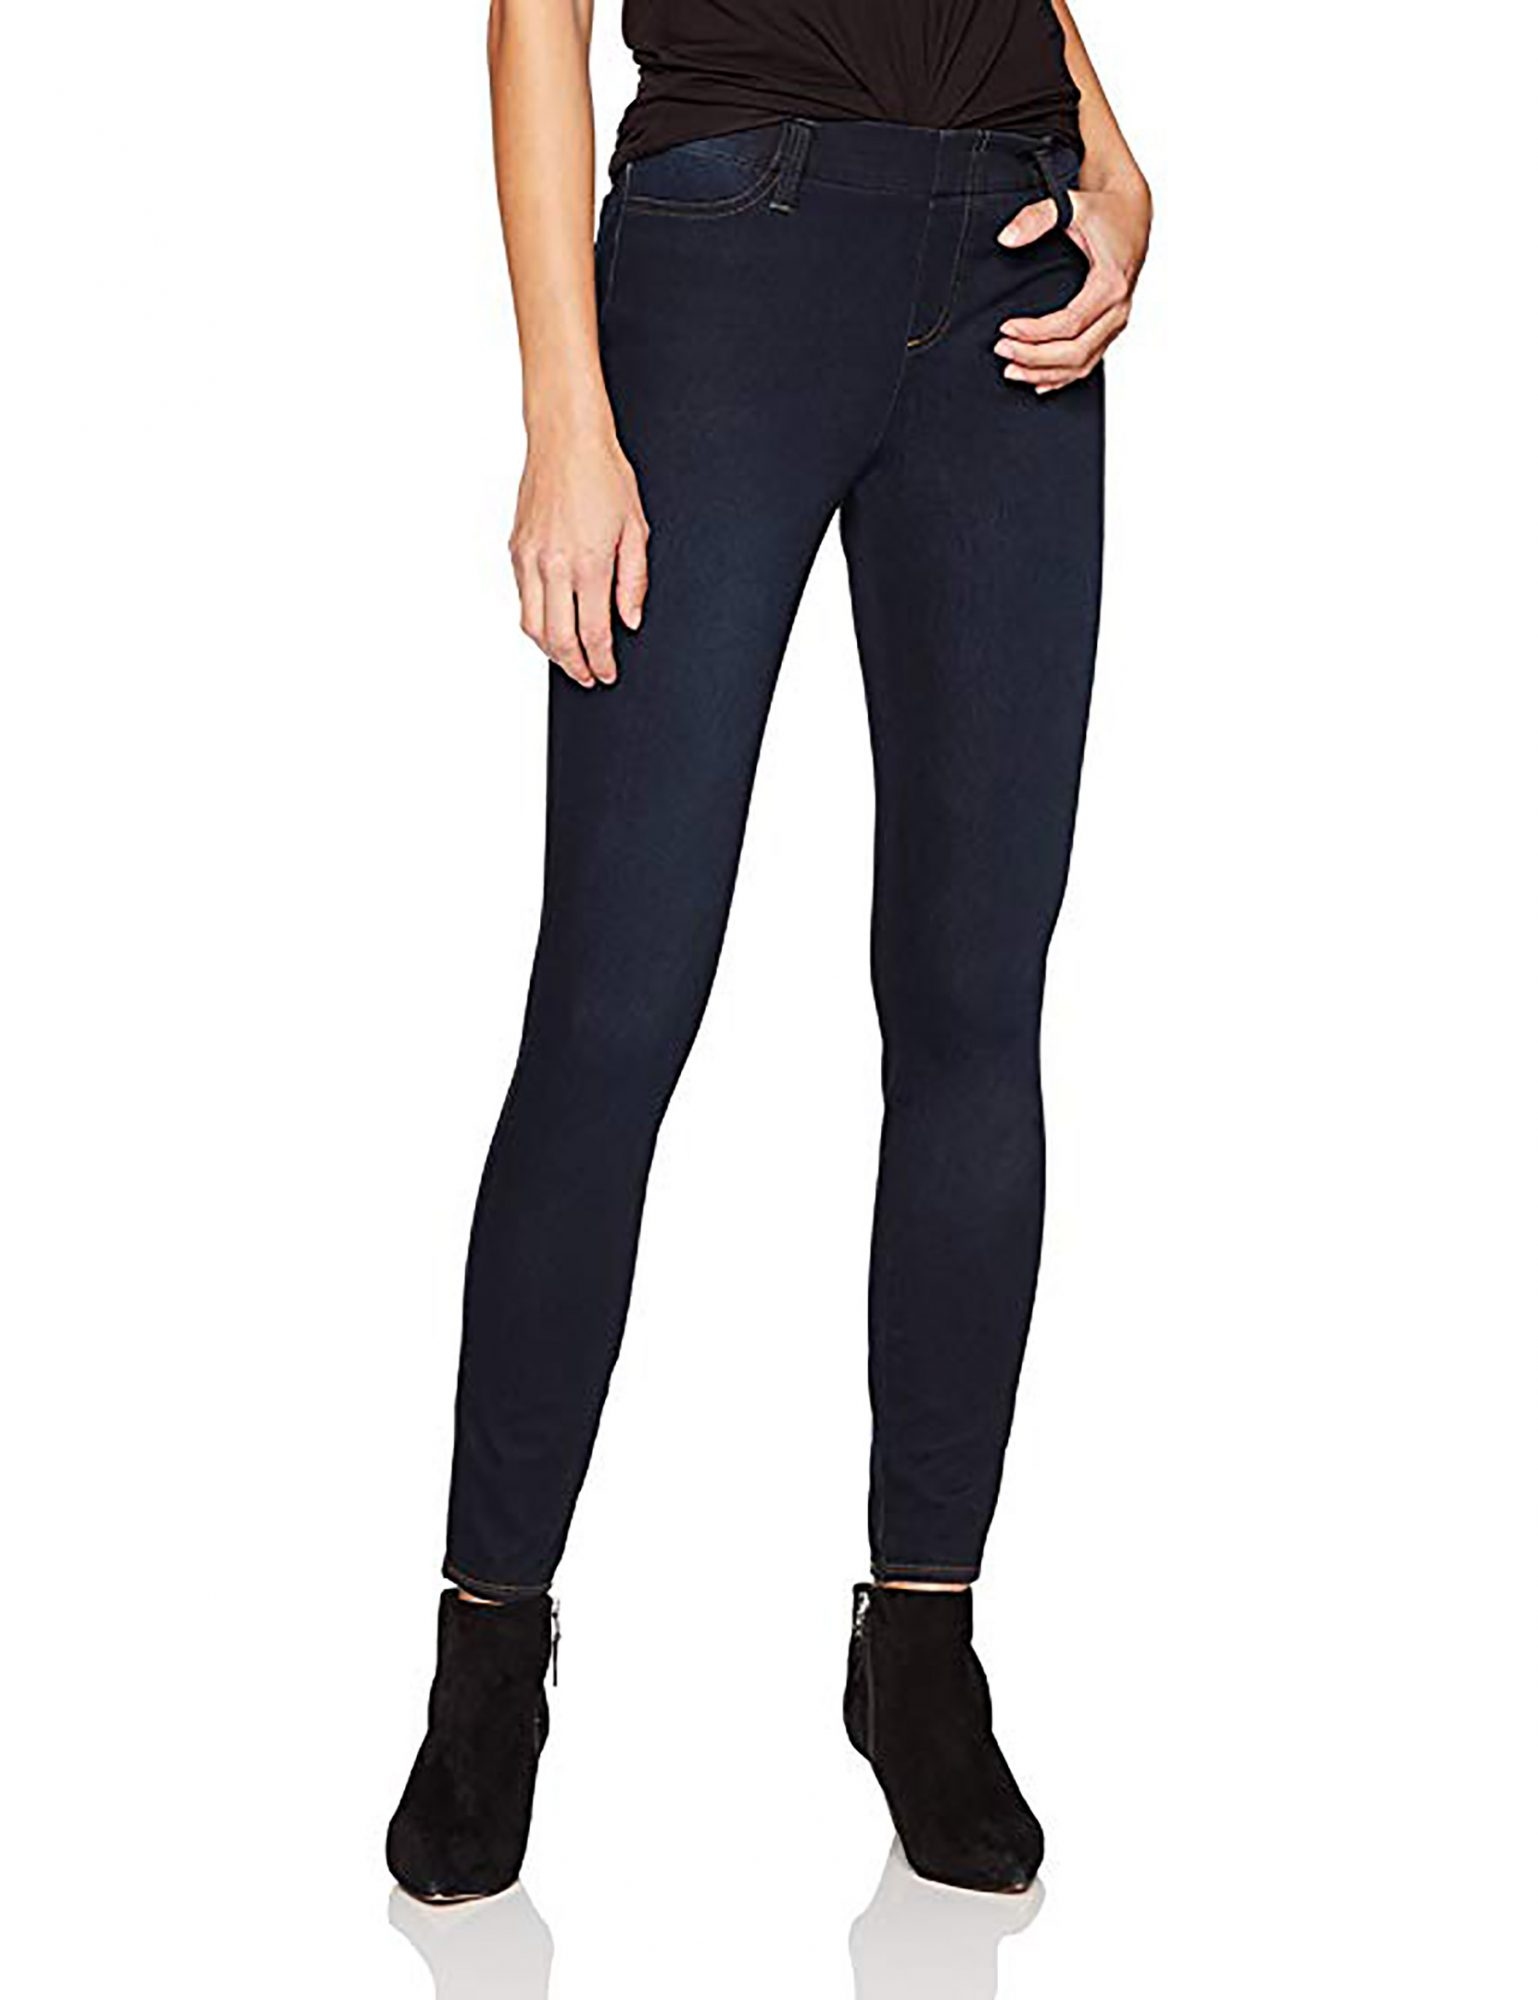 Daily Ritual Women's Skinny Stretch Jegging